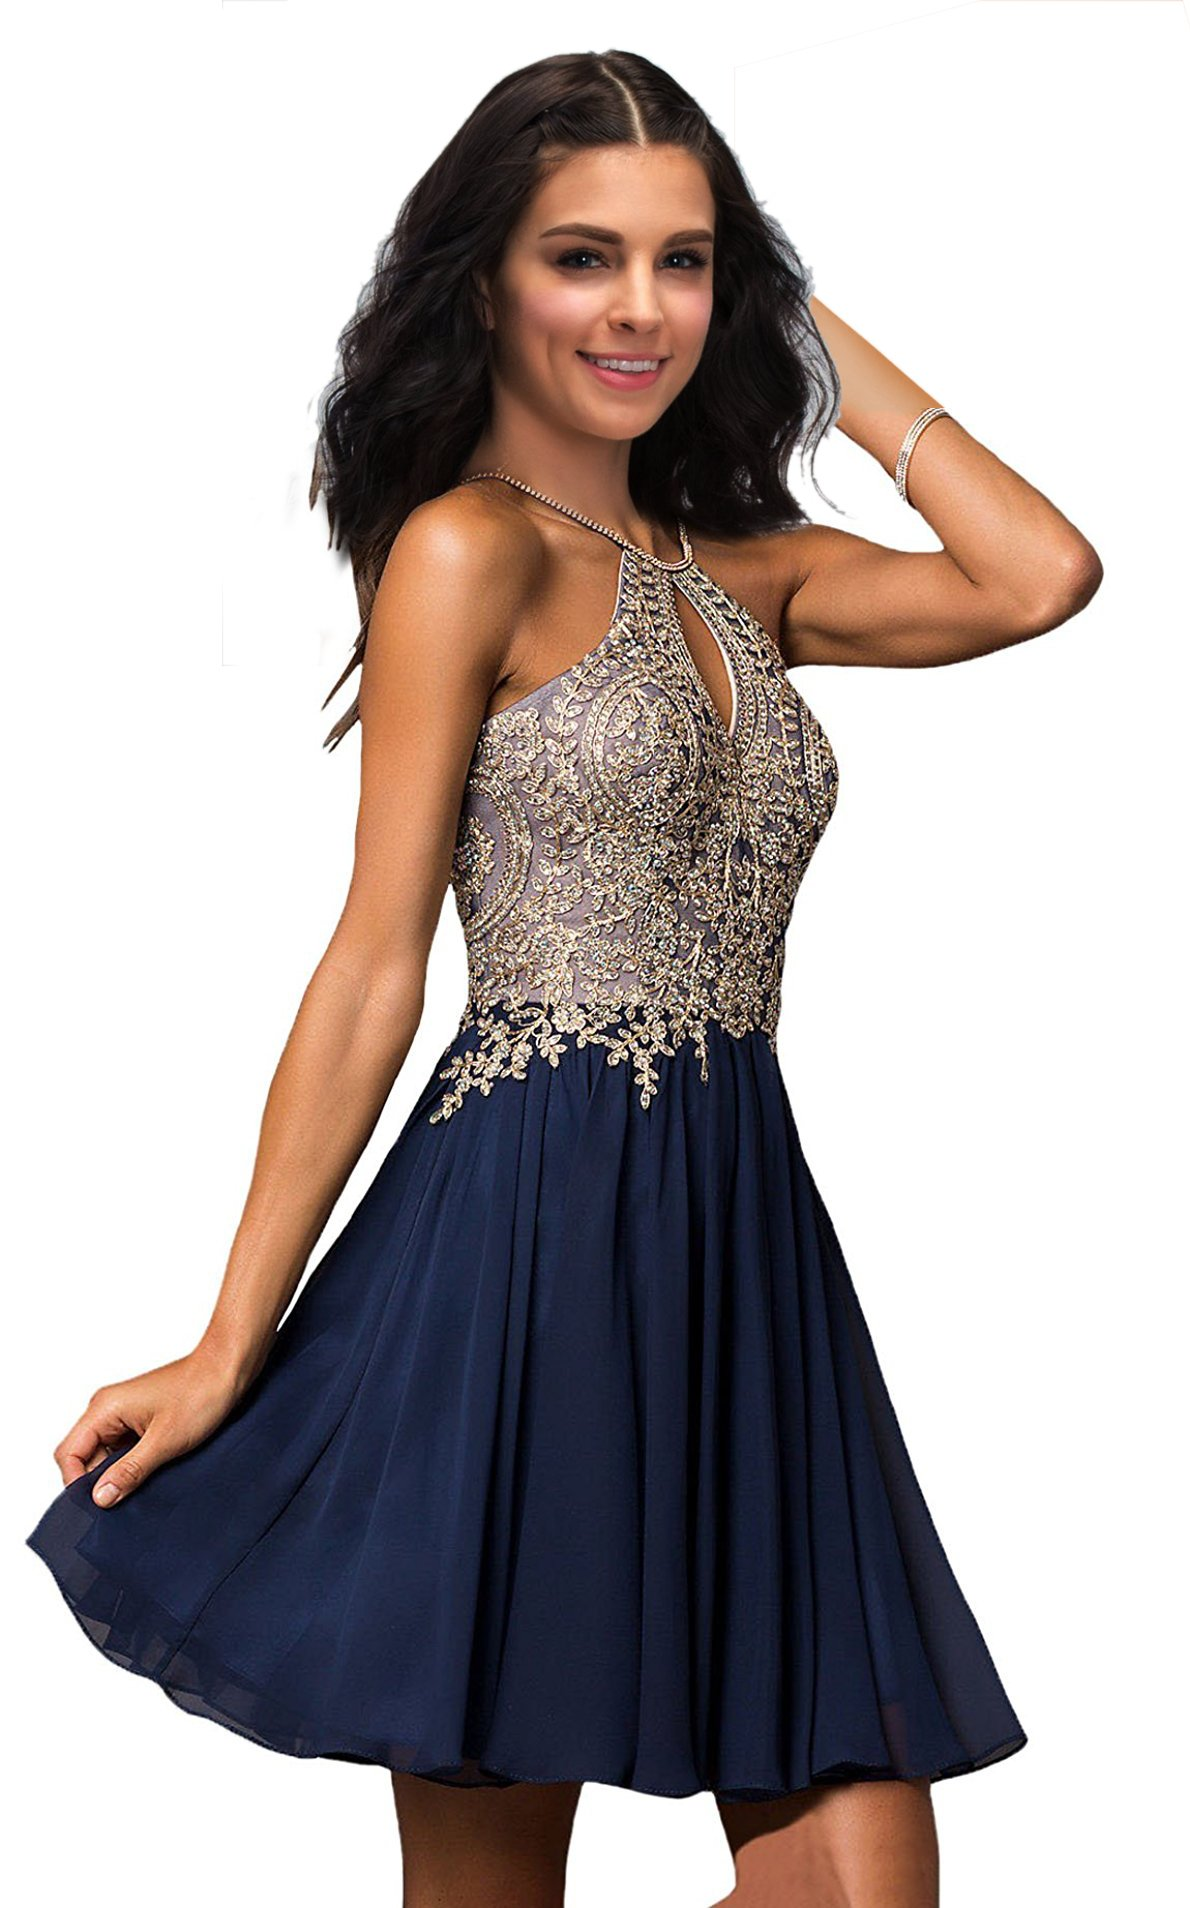 Lily Wedding Womens Halter Lace Appliques Prom Dresses Short Chiffon Homecoming Bridesmaid Dress Navy Blue Size 4